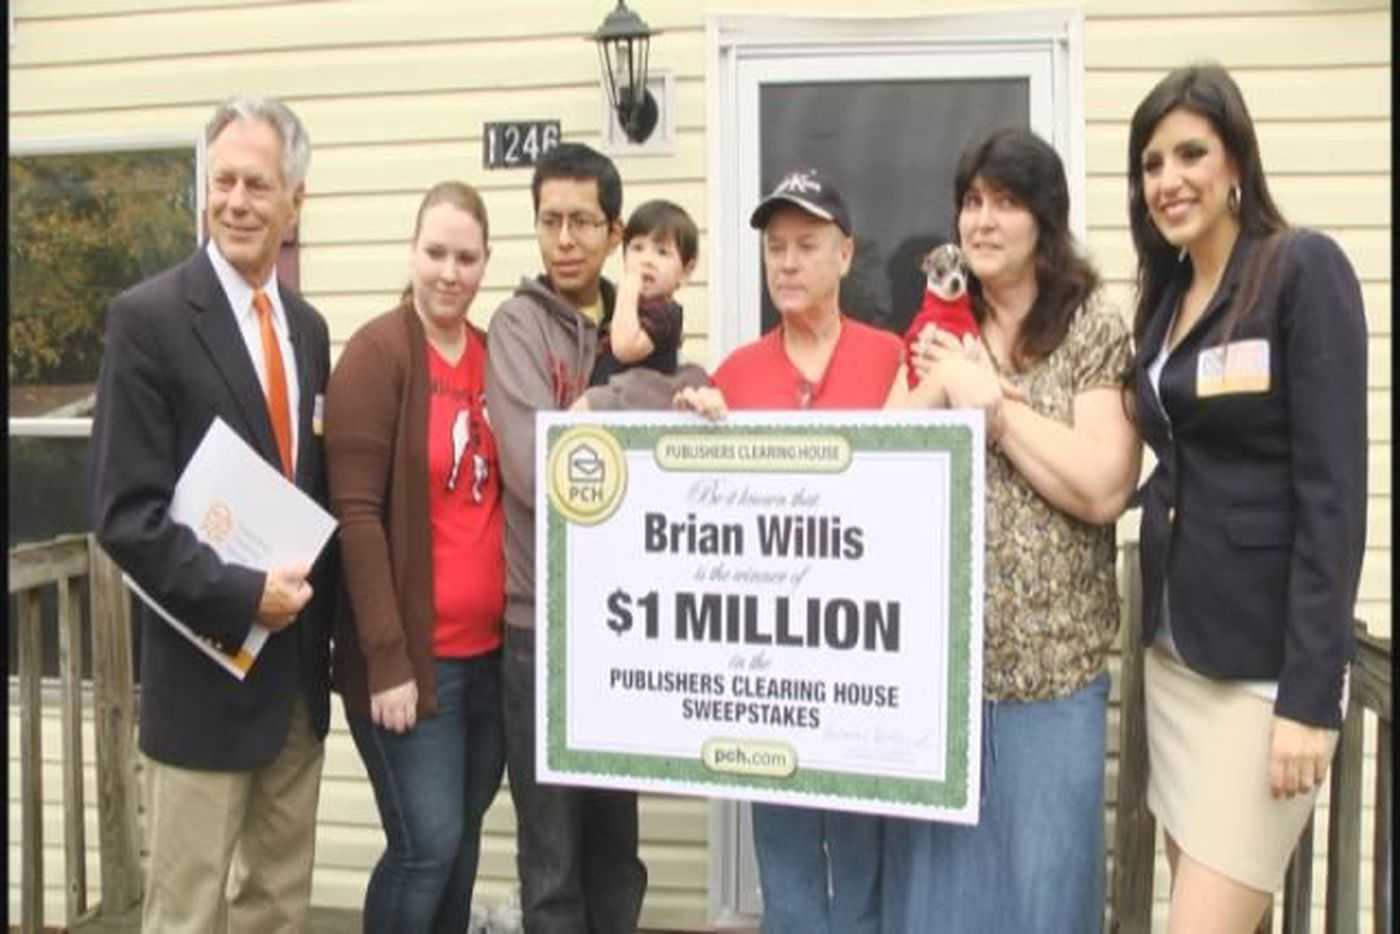 Lexington man wins $1M in Publishers Clearing House Sweepstakes